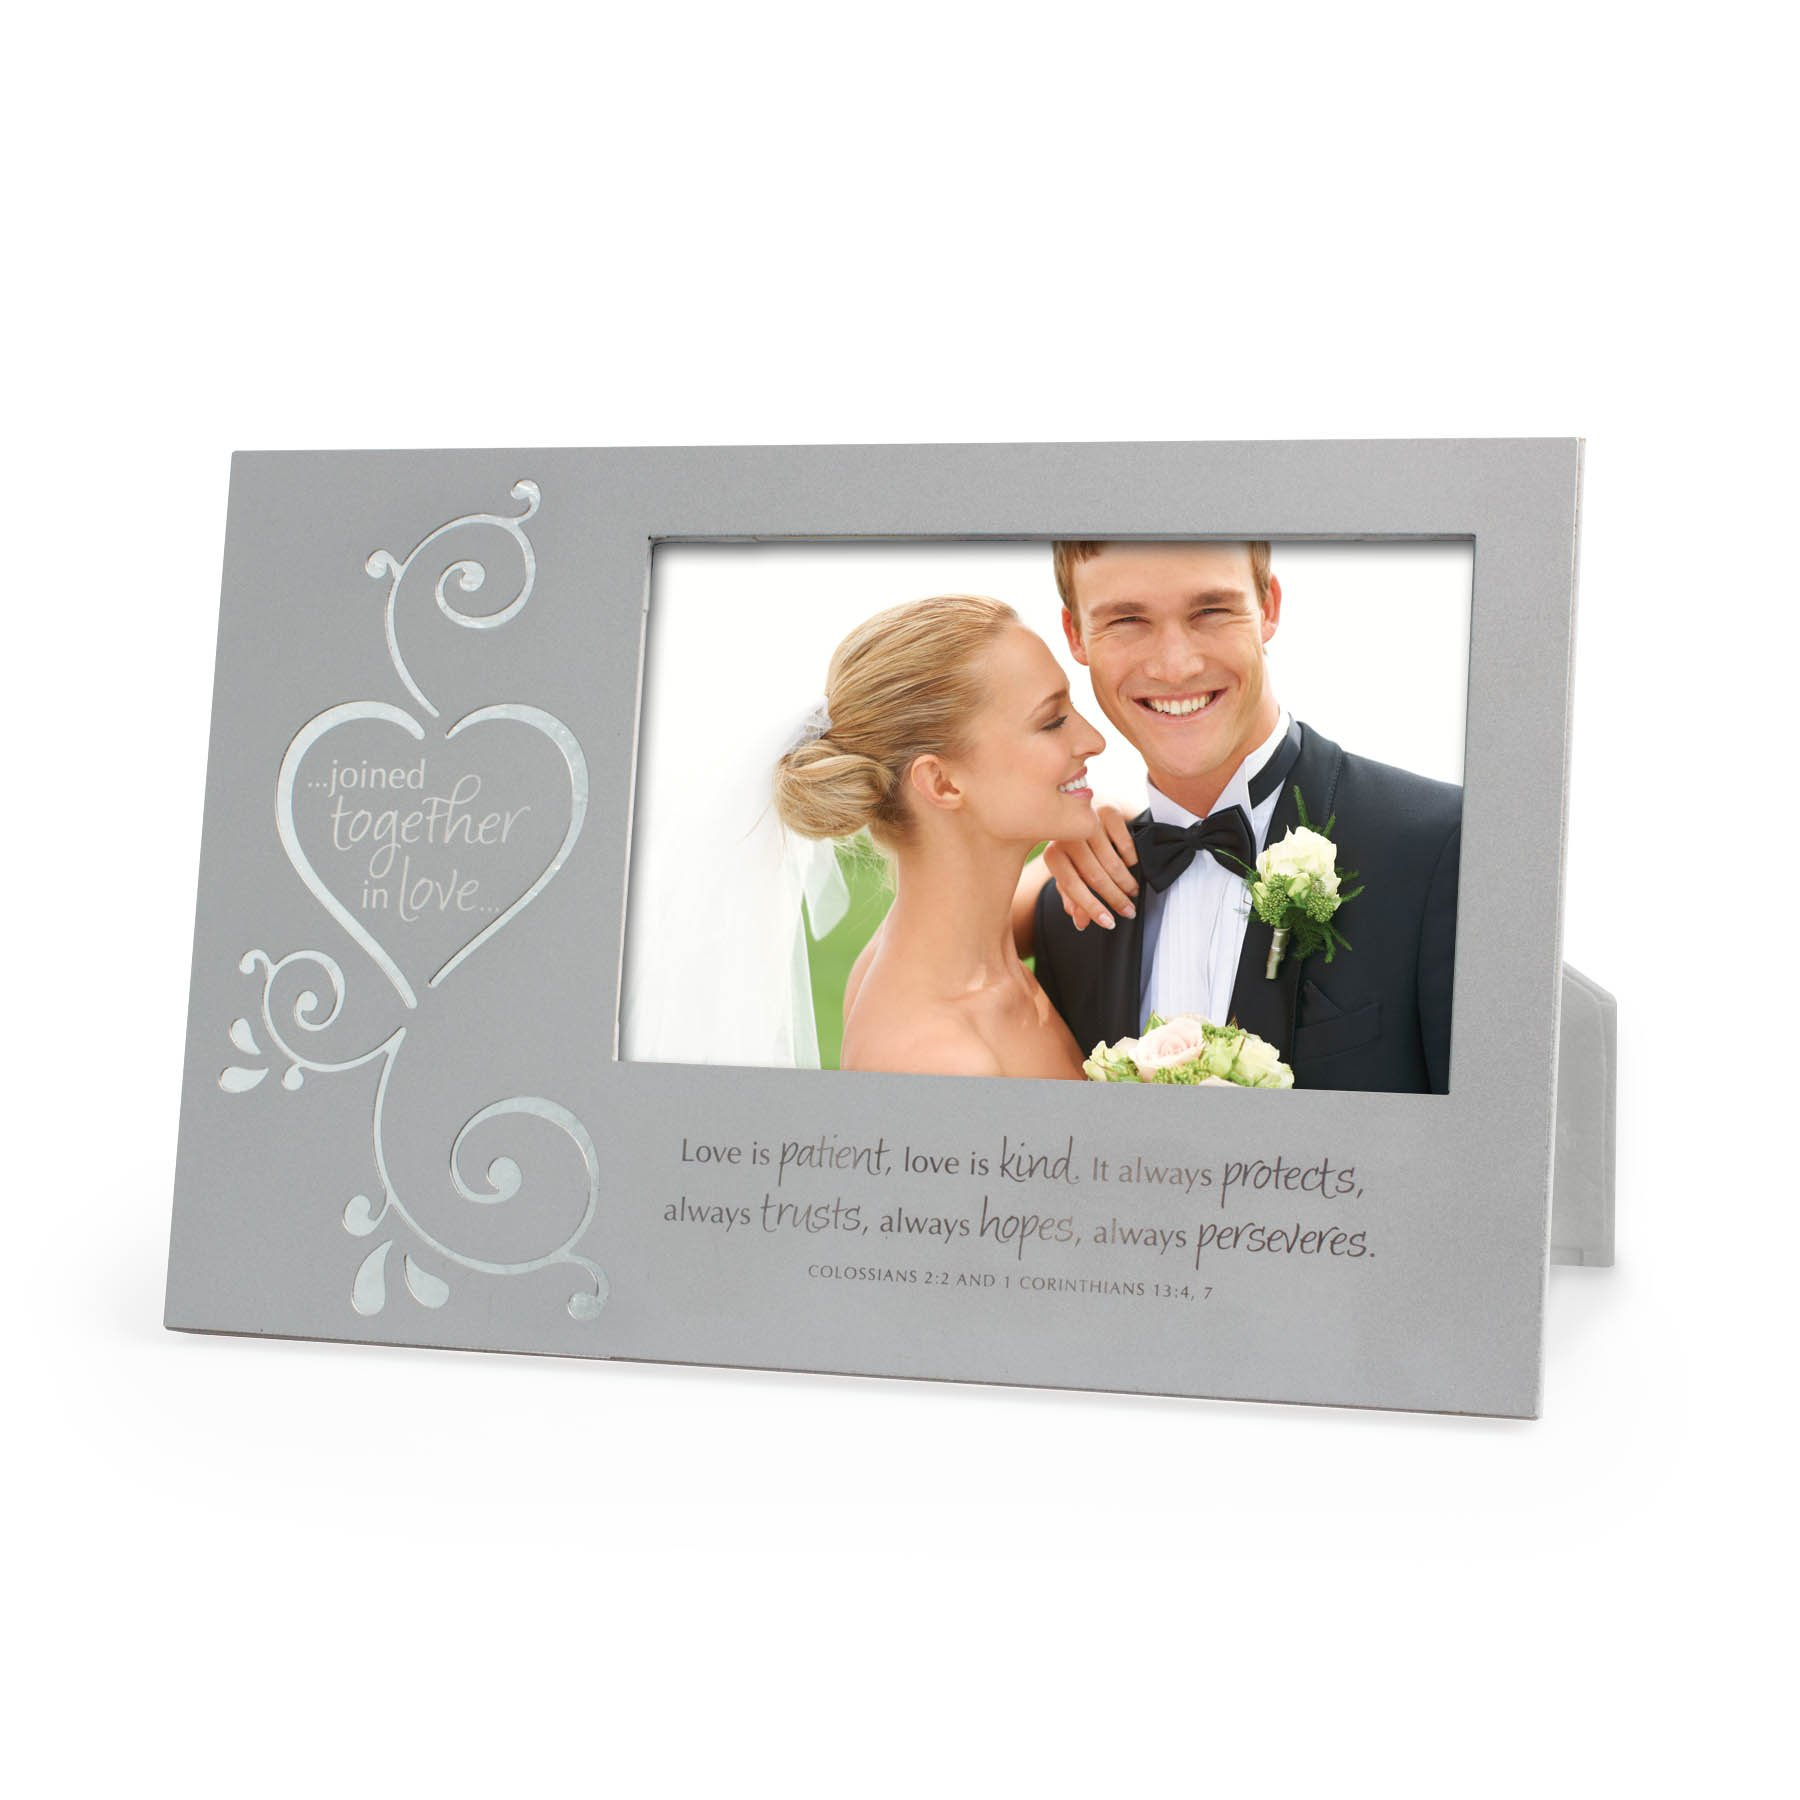 Lighthouse Christian Products Metal Joined Together in Love Frame, 4 x 6'', Silver